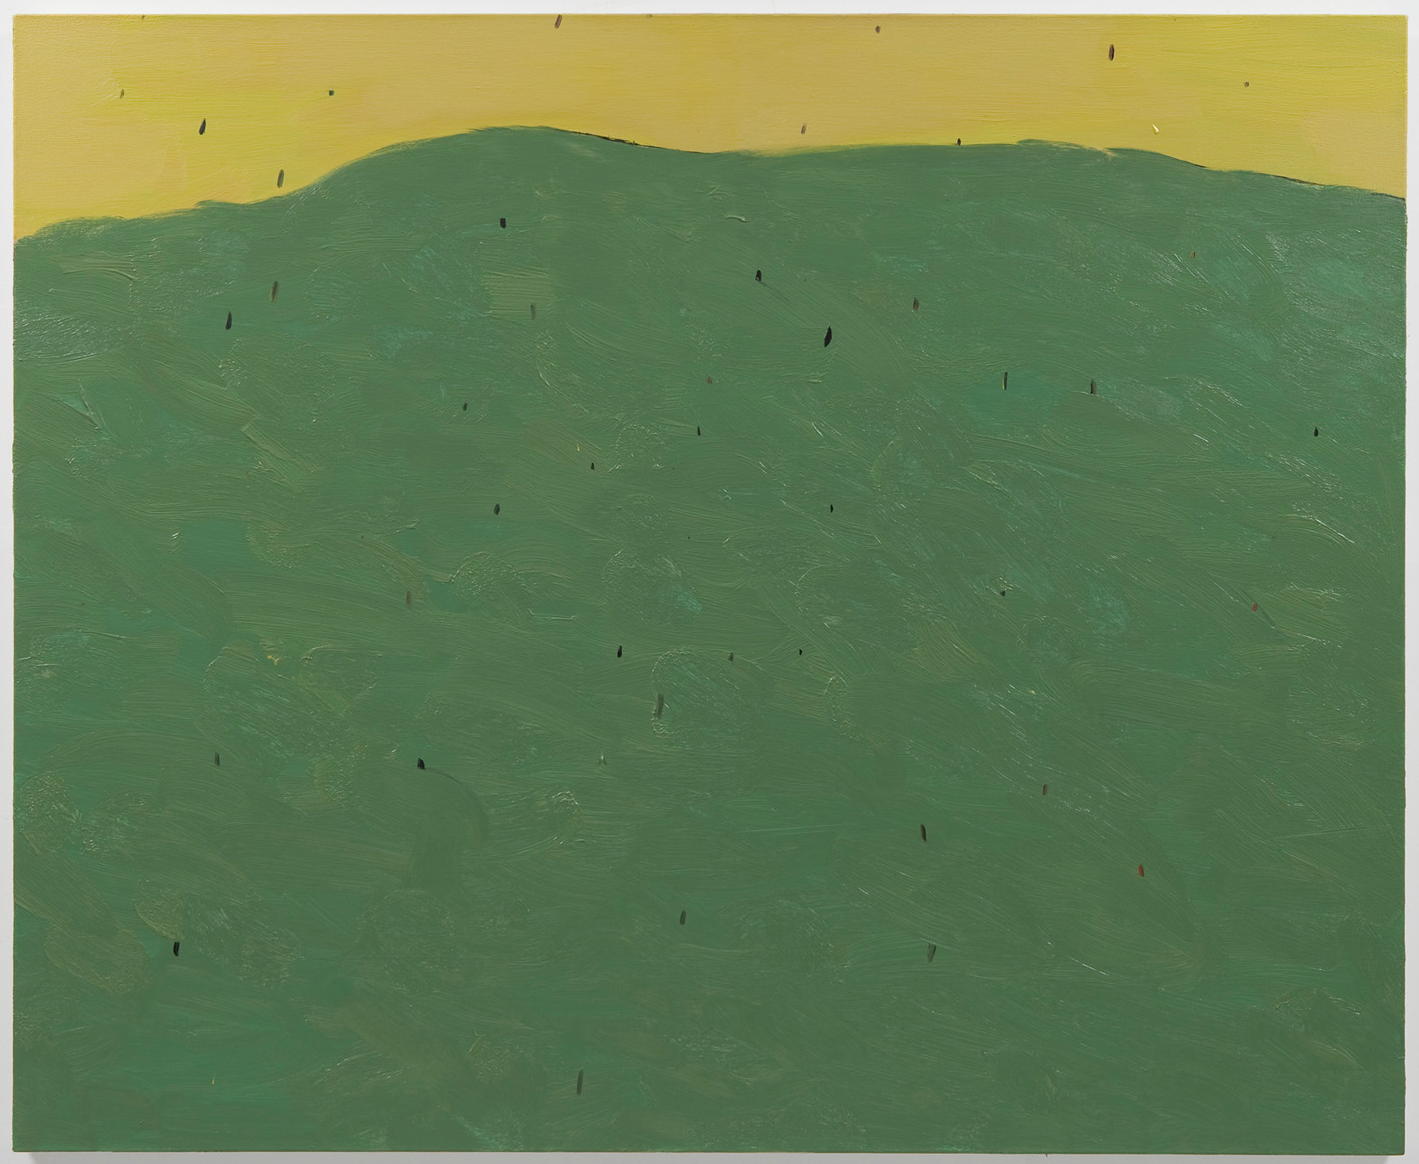 The Hill   2012 oil on canvas 44 x 55 in/112 x 140 cm